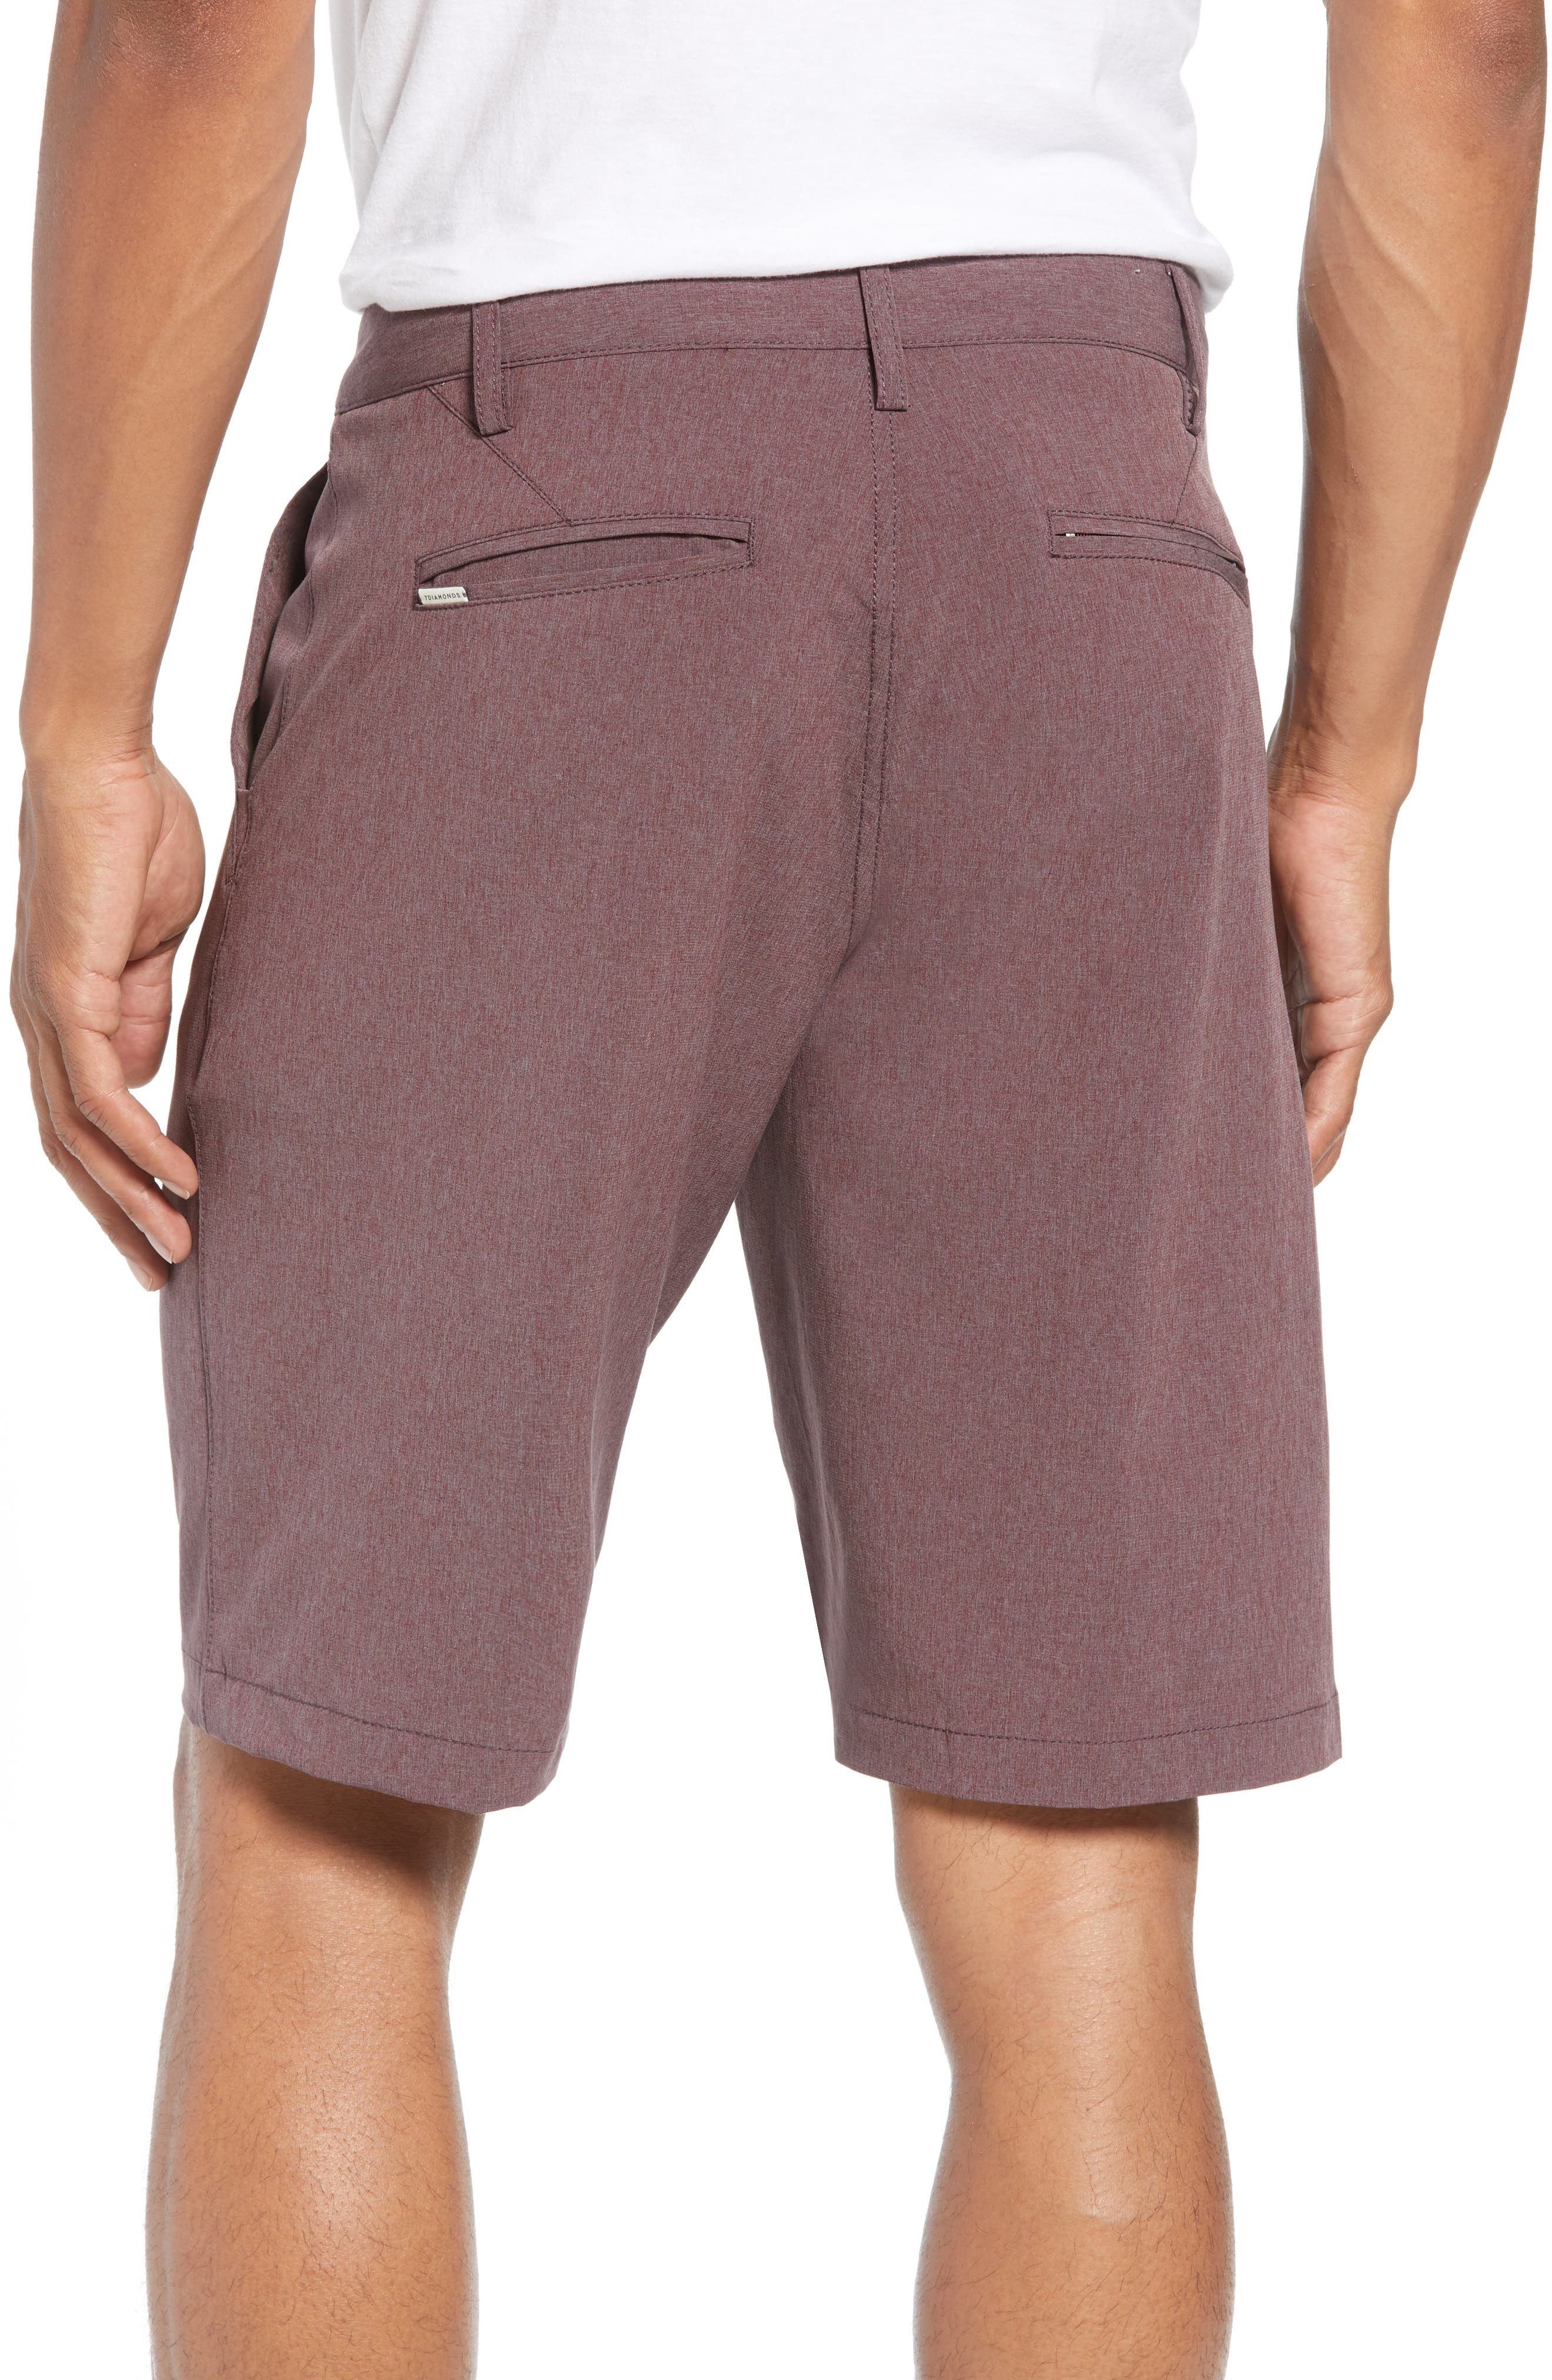 Adrenaline Stretch Shorts,                             Alternate thumbnail 4, color,                             Berry